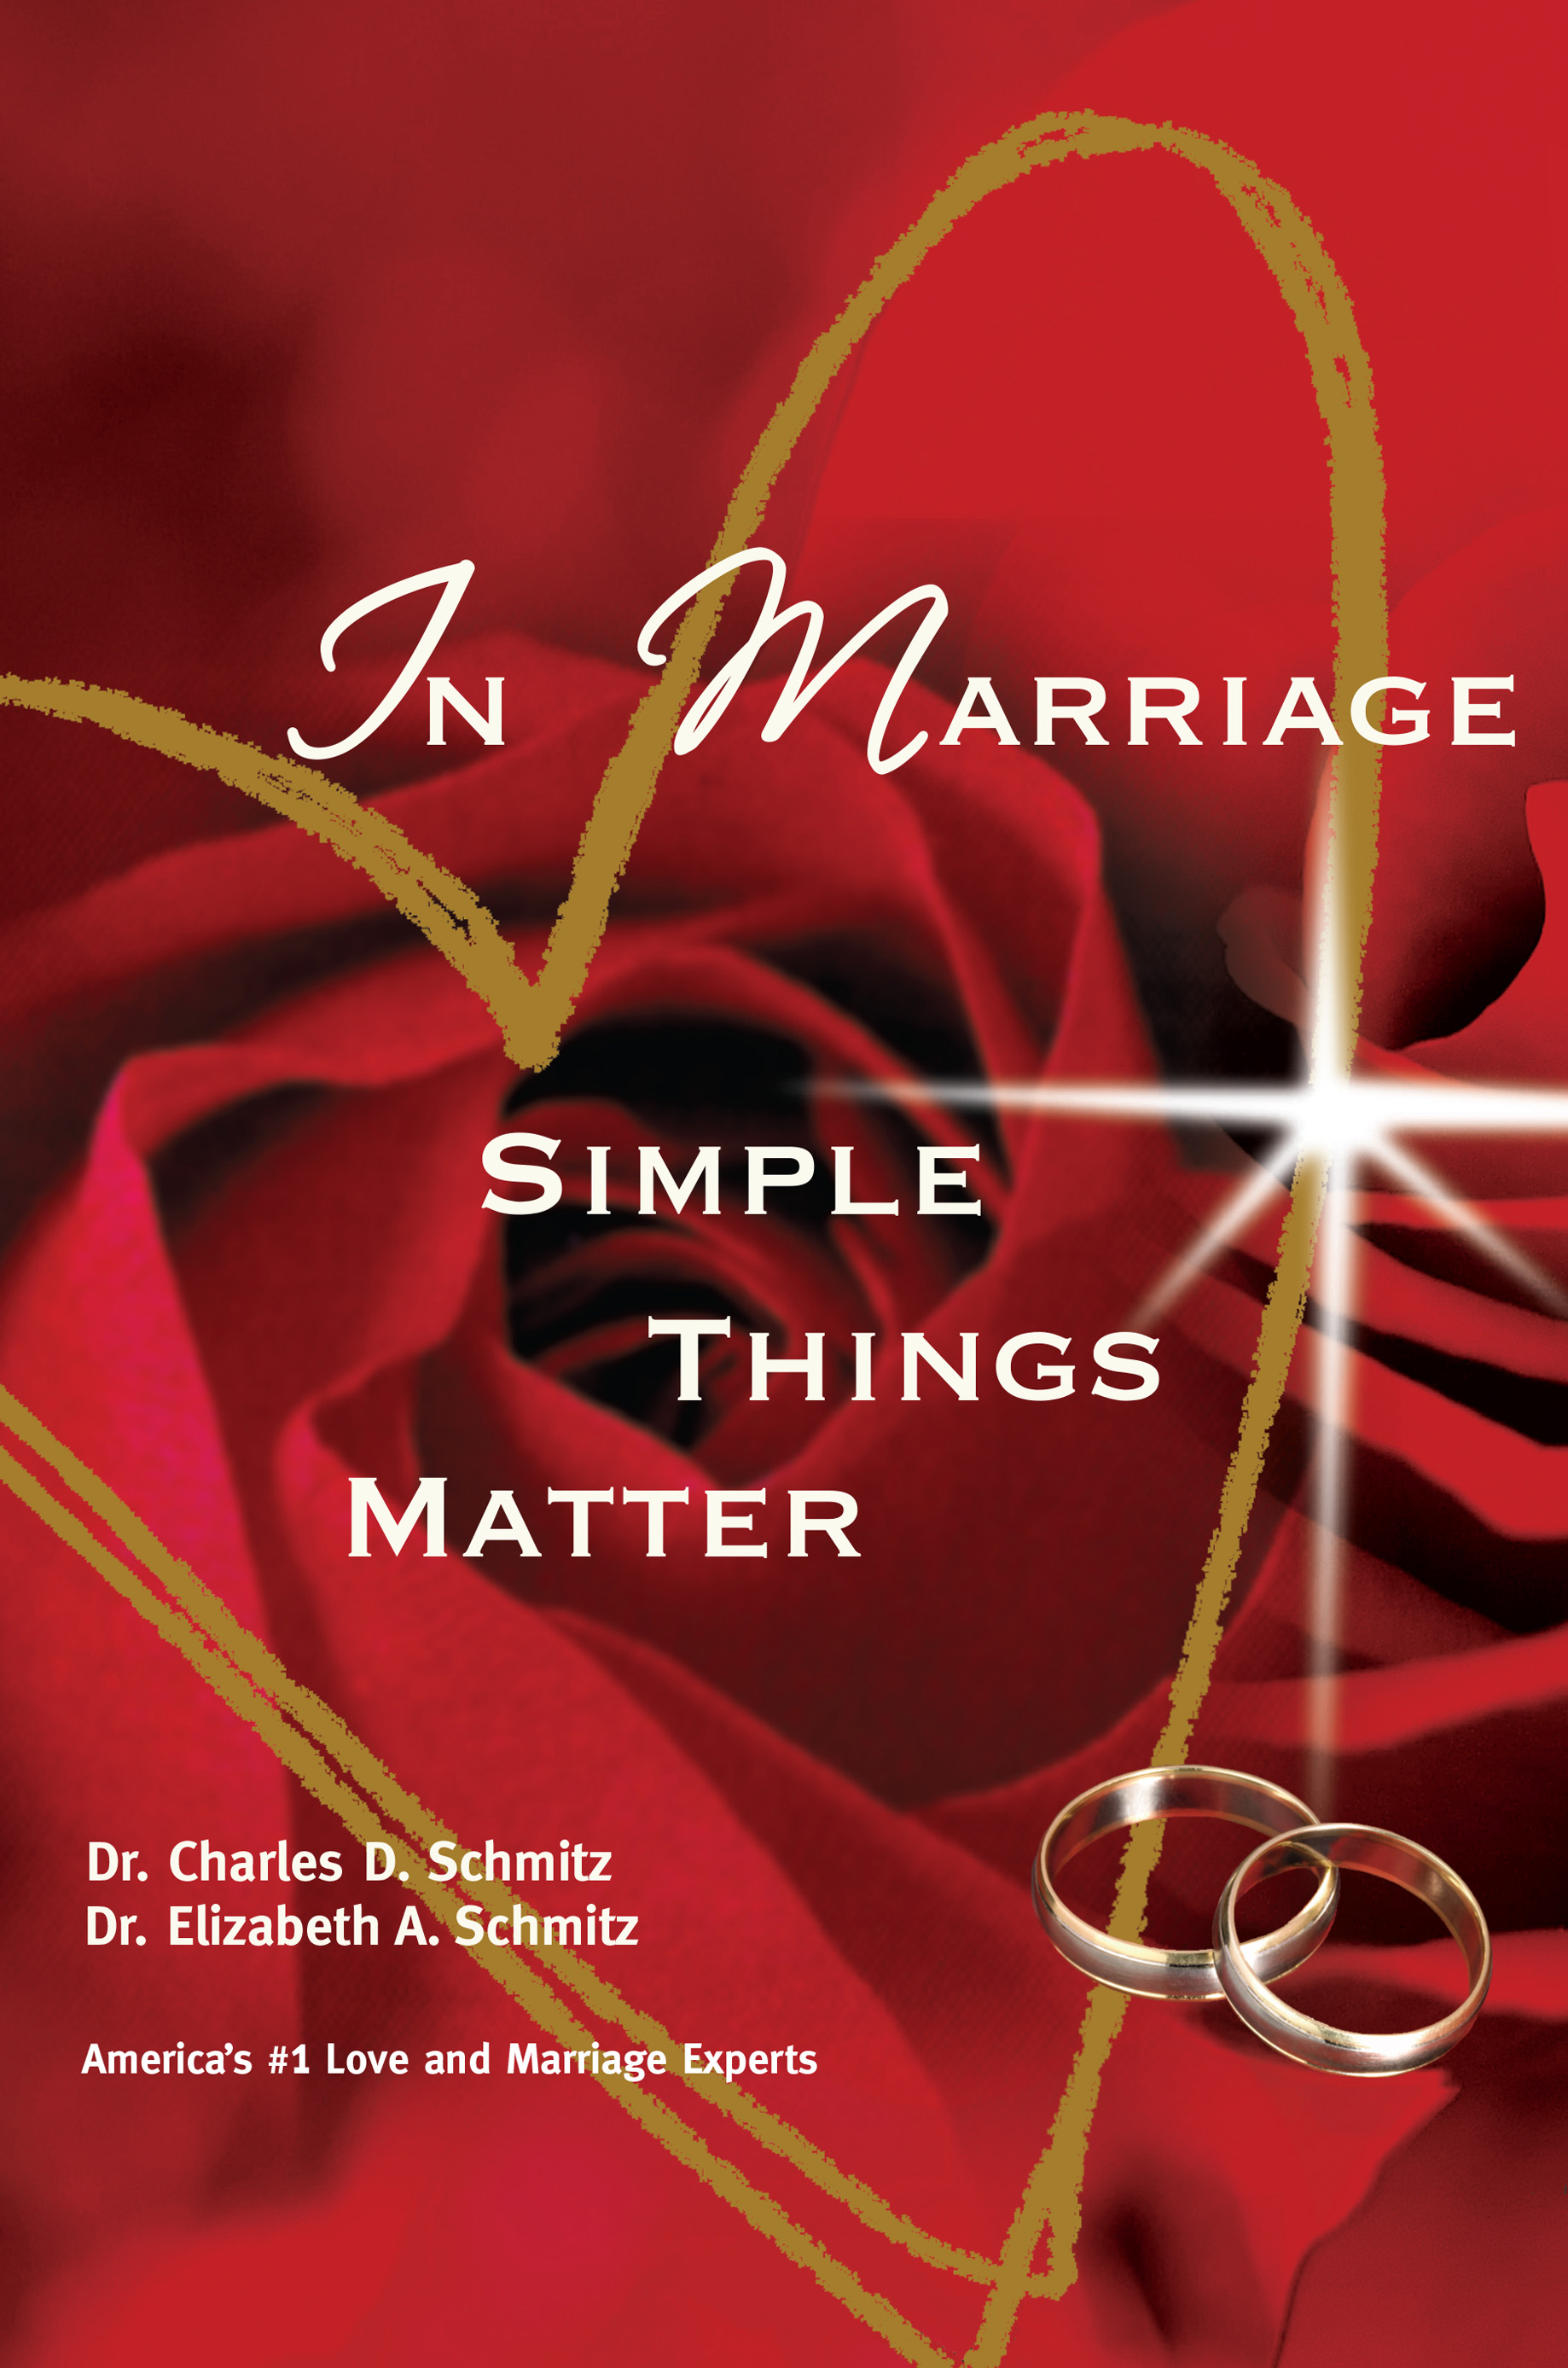 In Marriage Simple Things Matter by America's #1 Love and Marriage Experts, Dr. Charles D. Schmitz and Dr. Elizabeth A. Schmitz